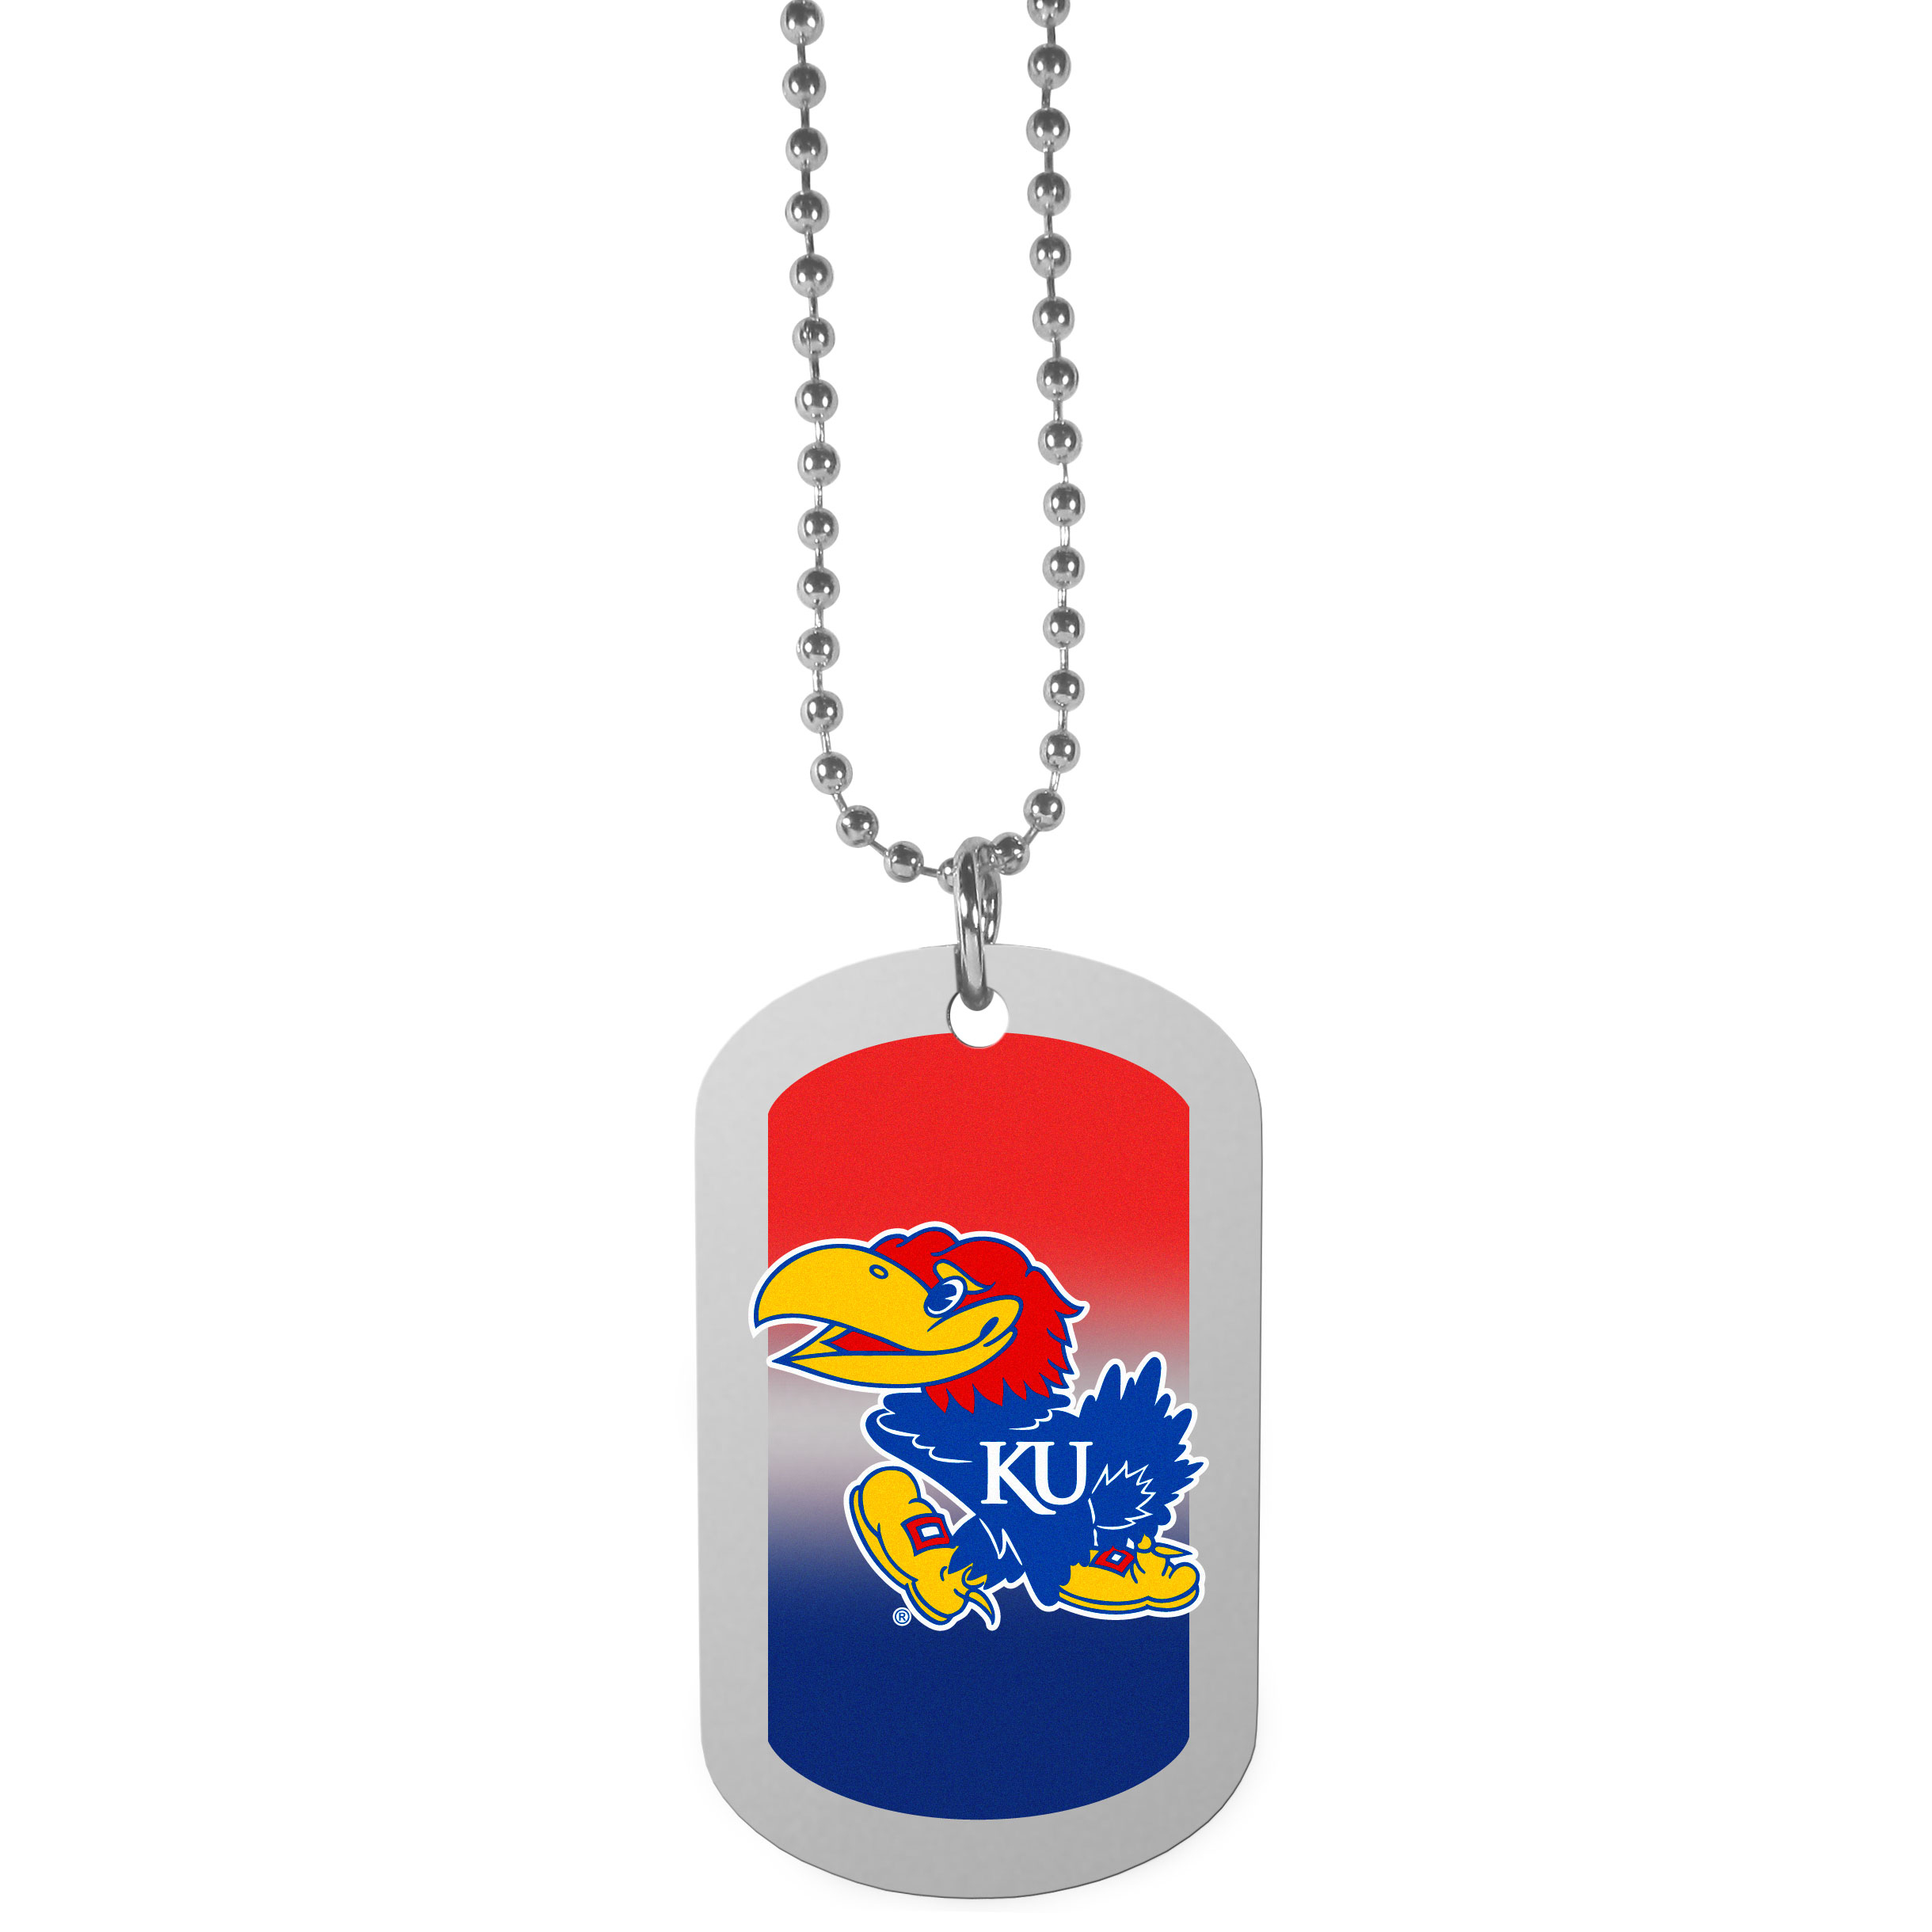 Kansas Jayhawks Team Tag Necklace - Dog tag necklaces are a fashion statement that is here to stay. The sporty version of the classic tag features a gradient print in team colors featuring a full color team logo over a high polish tag to create a bold and sporty look. The tag comes on a 26 inch ball chain with a ball and joint clasp. Any Kansas Jayhawks would be proud to wear this attractive fashion accessory.